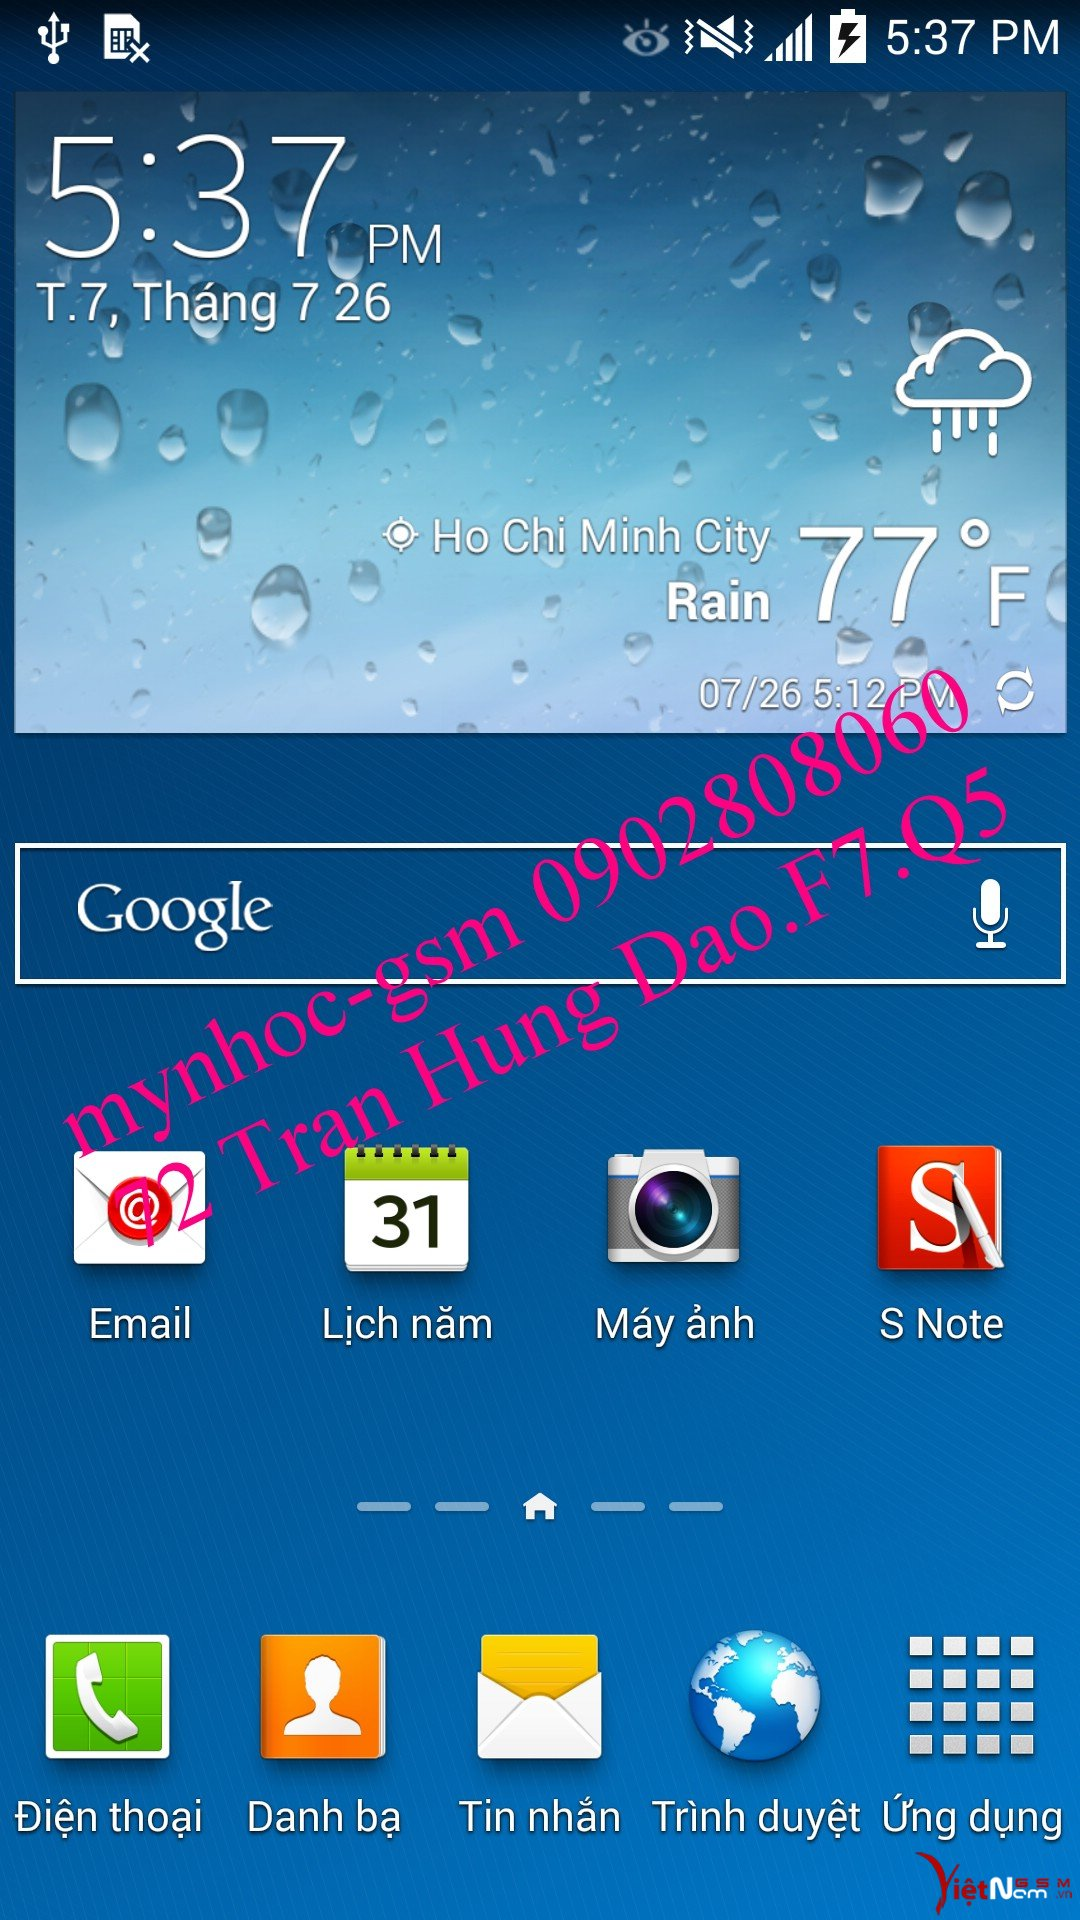 Screenshot_2014-07-26-17-37-34.jpg